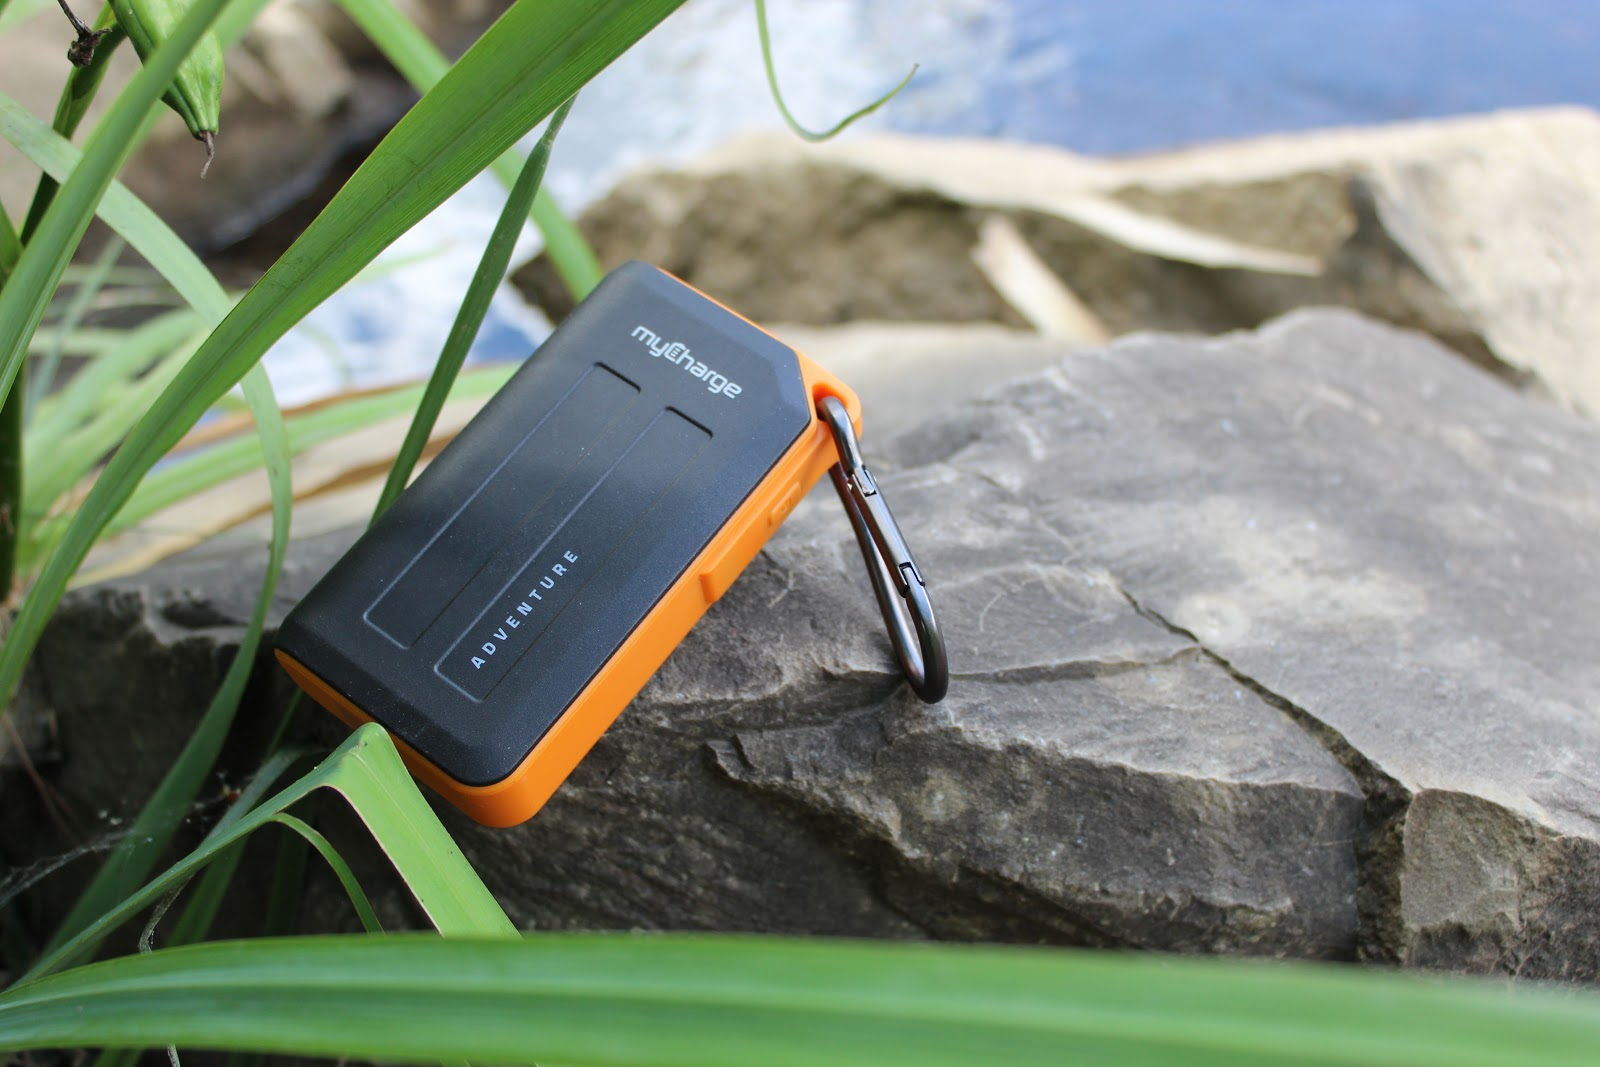 MyCharge Adventure at InMotion